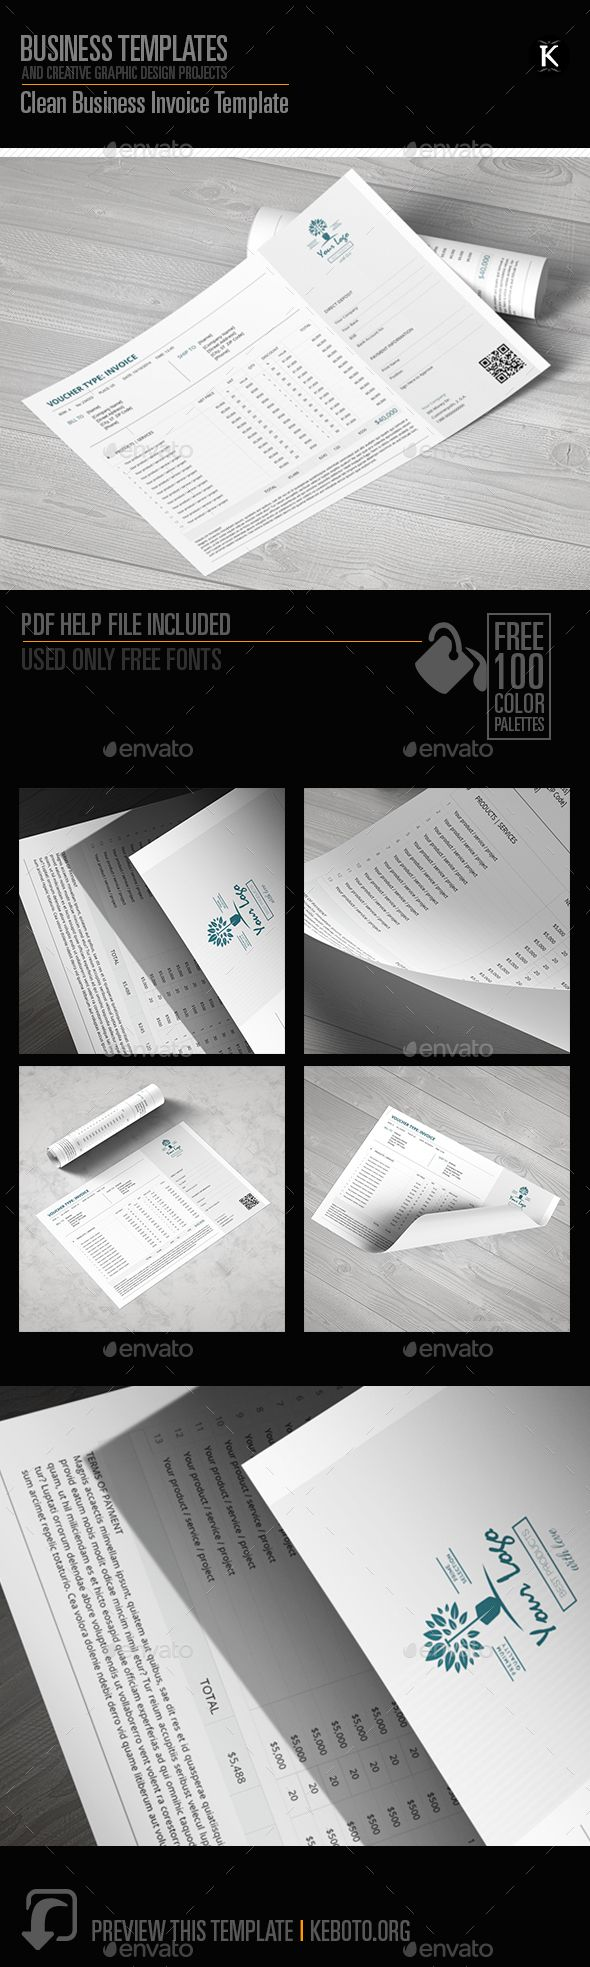 Clean Business Invoice Template by Keboto Preview this itemhereClean Business Invoice TemplateSpecifications: Software: Adobe InDesignFormat: A4 LandscapeColor Model: CMYKC